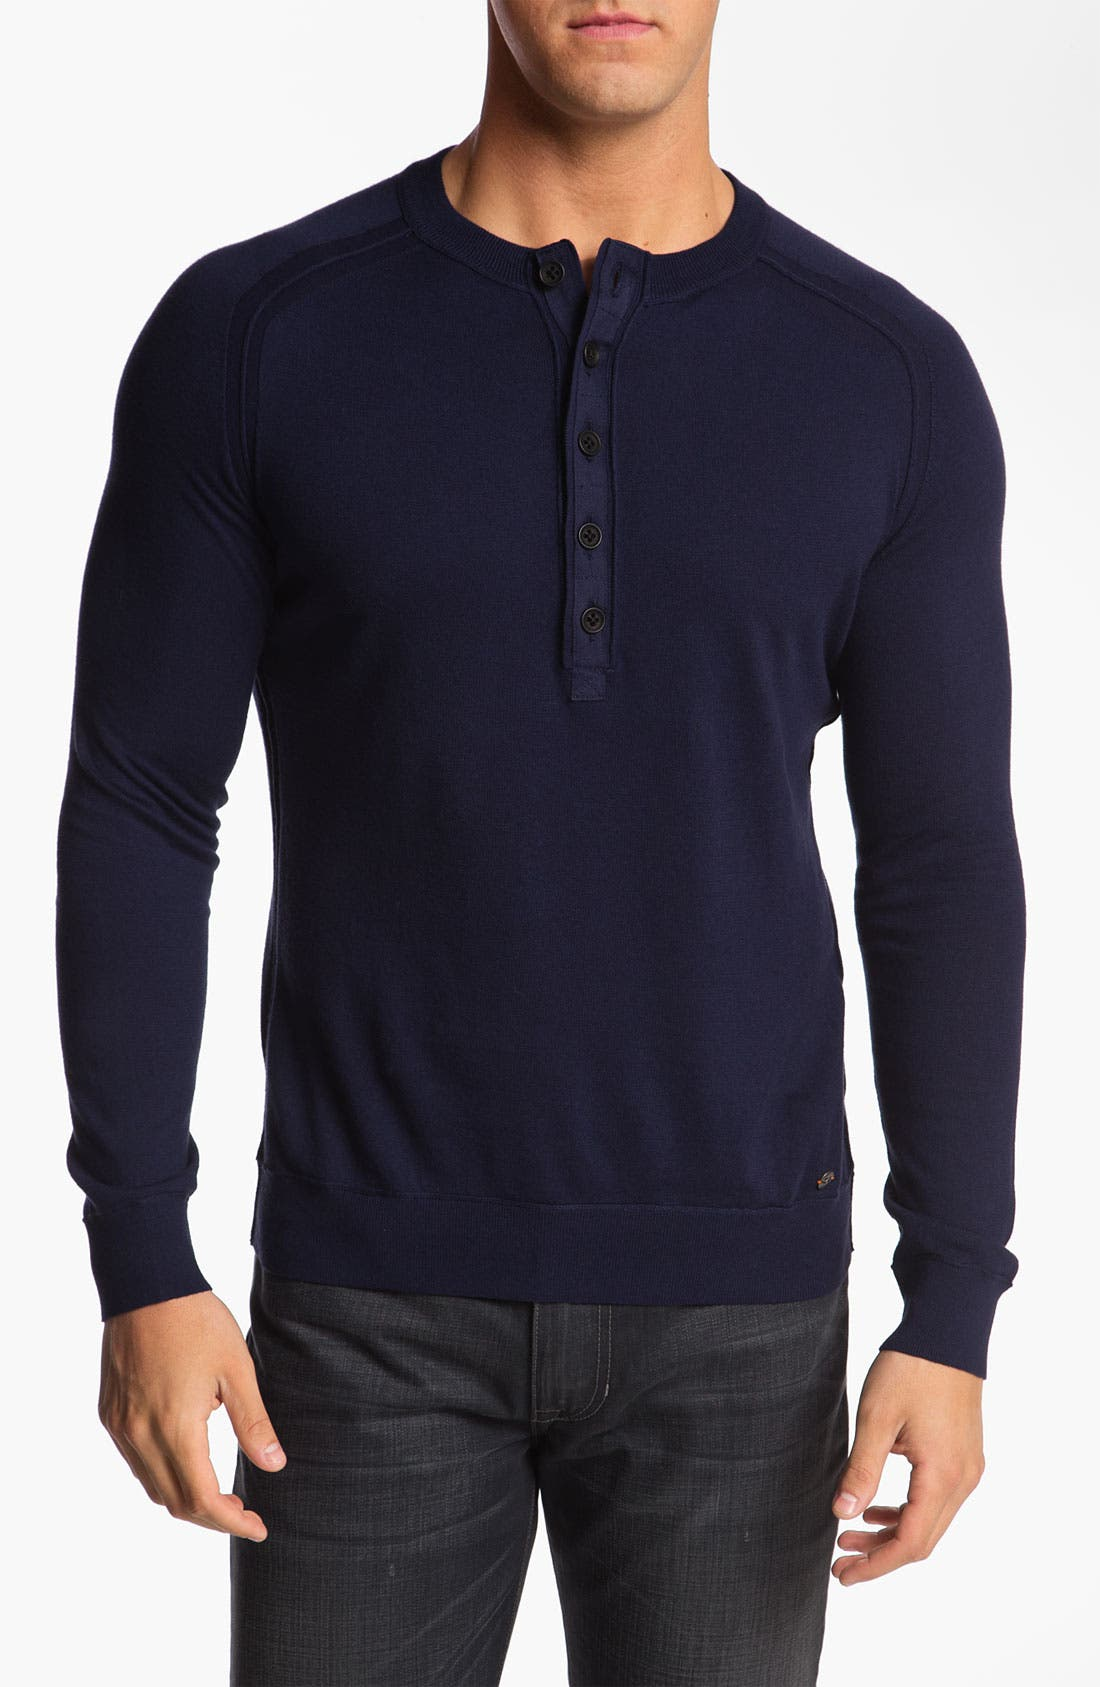 Alternate Image 1 Selected - BOSS Orange Trim Fit Knit Henley